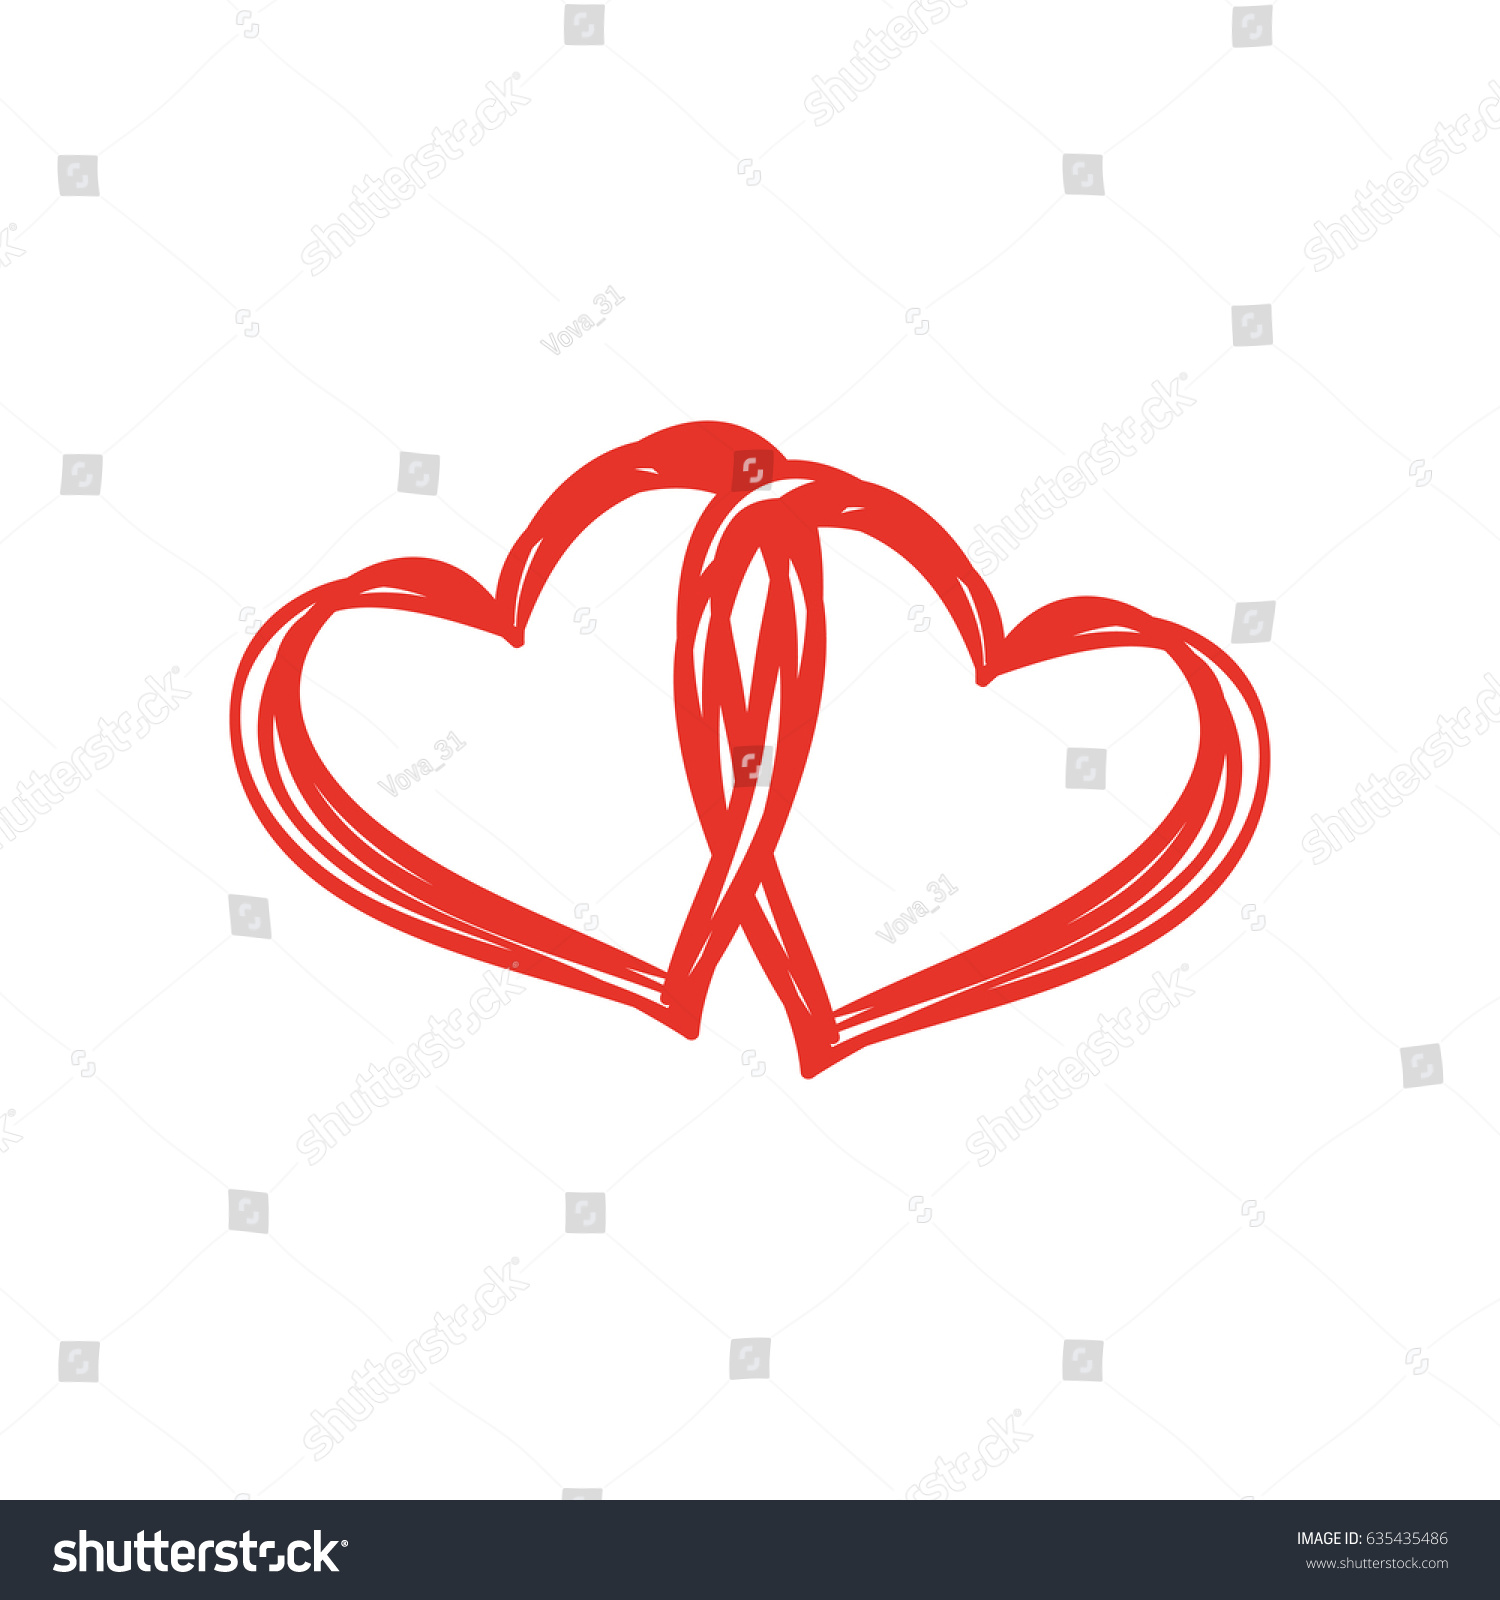 Heart Shape Design Love Symbols Stock Vector Royalty Free